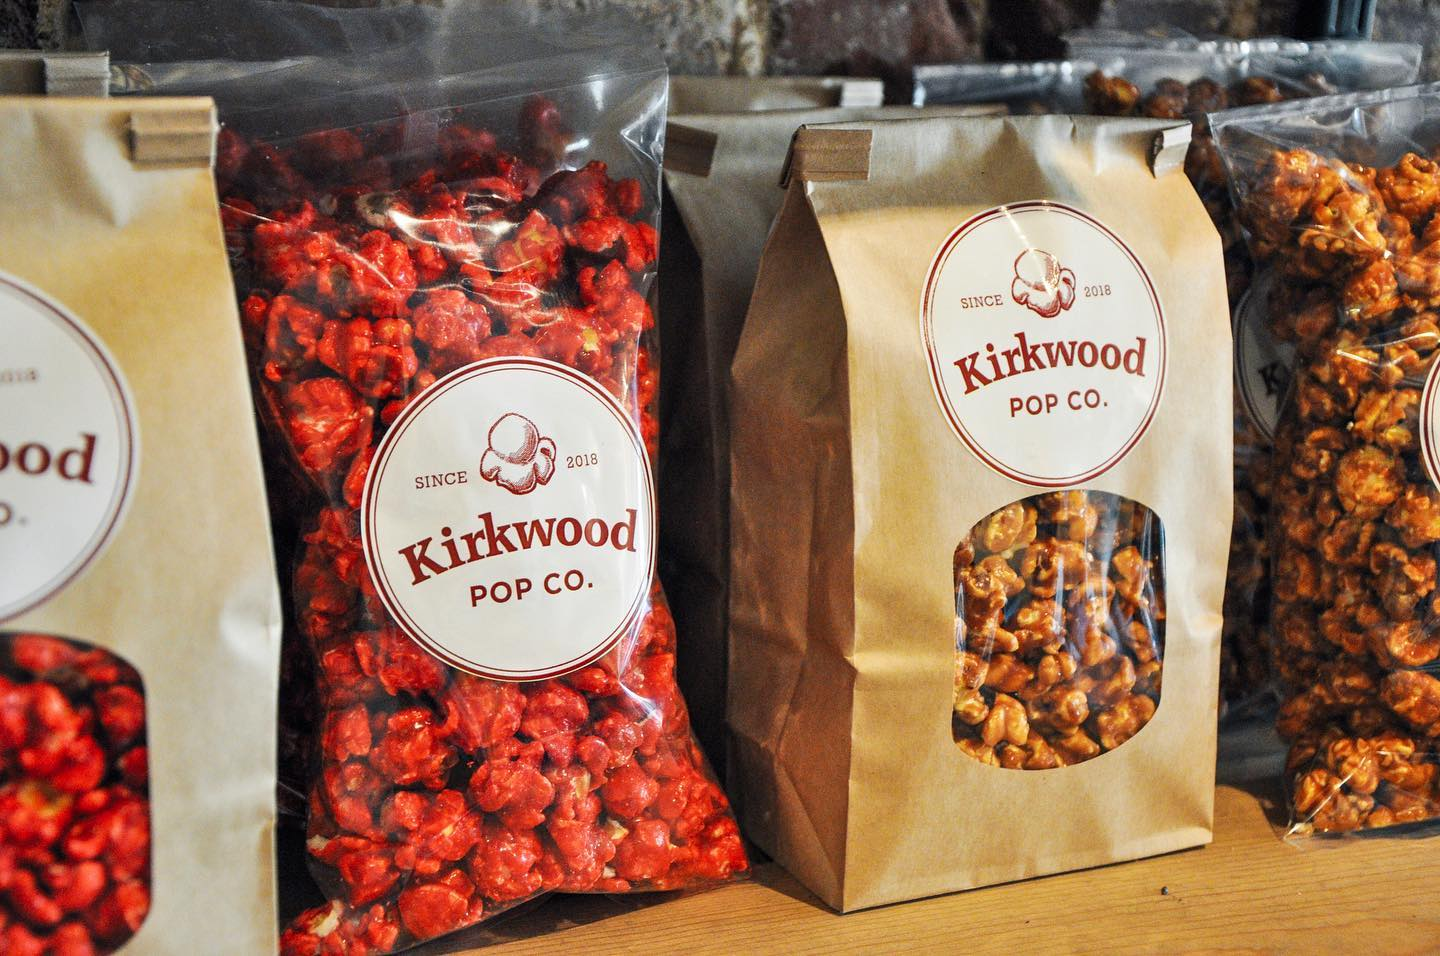 Kirkwood Pop Co.